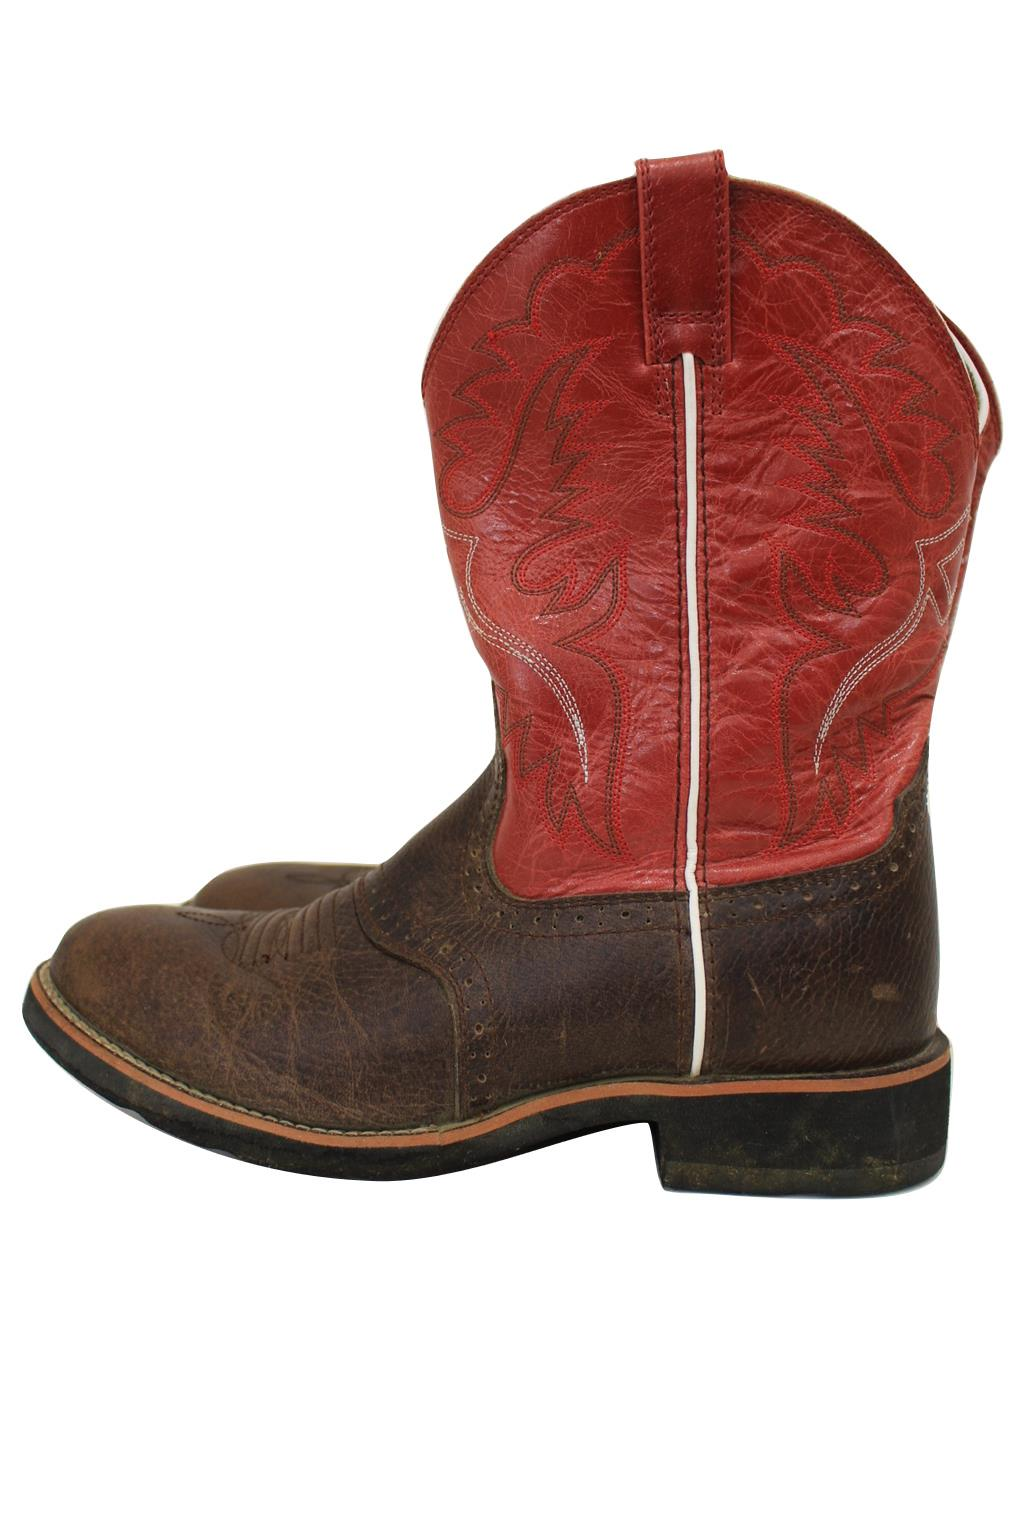 Red And Brown Cowgirl Boots - Boot Hto